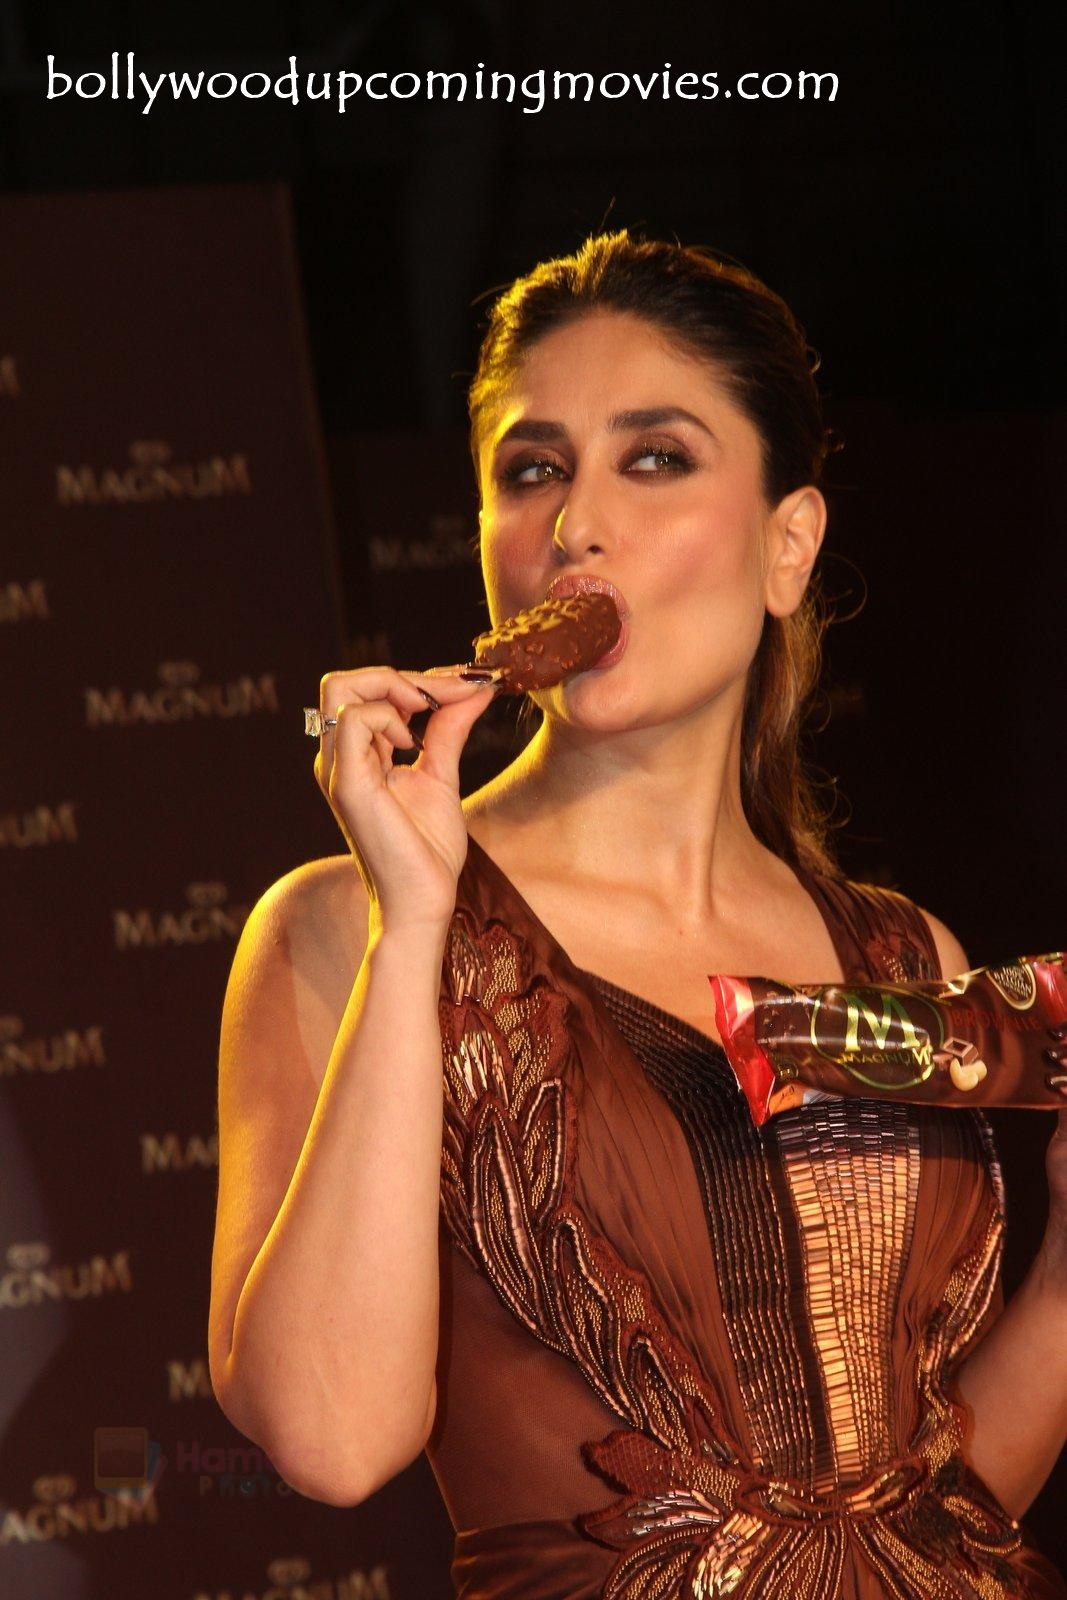 Kareena Kapoor at Magnum launch in Mumbai on 25th Feb 2016 shown to user 35136